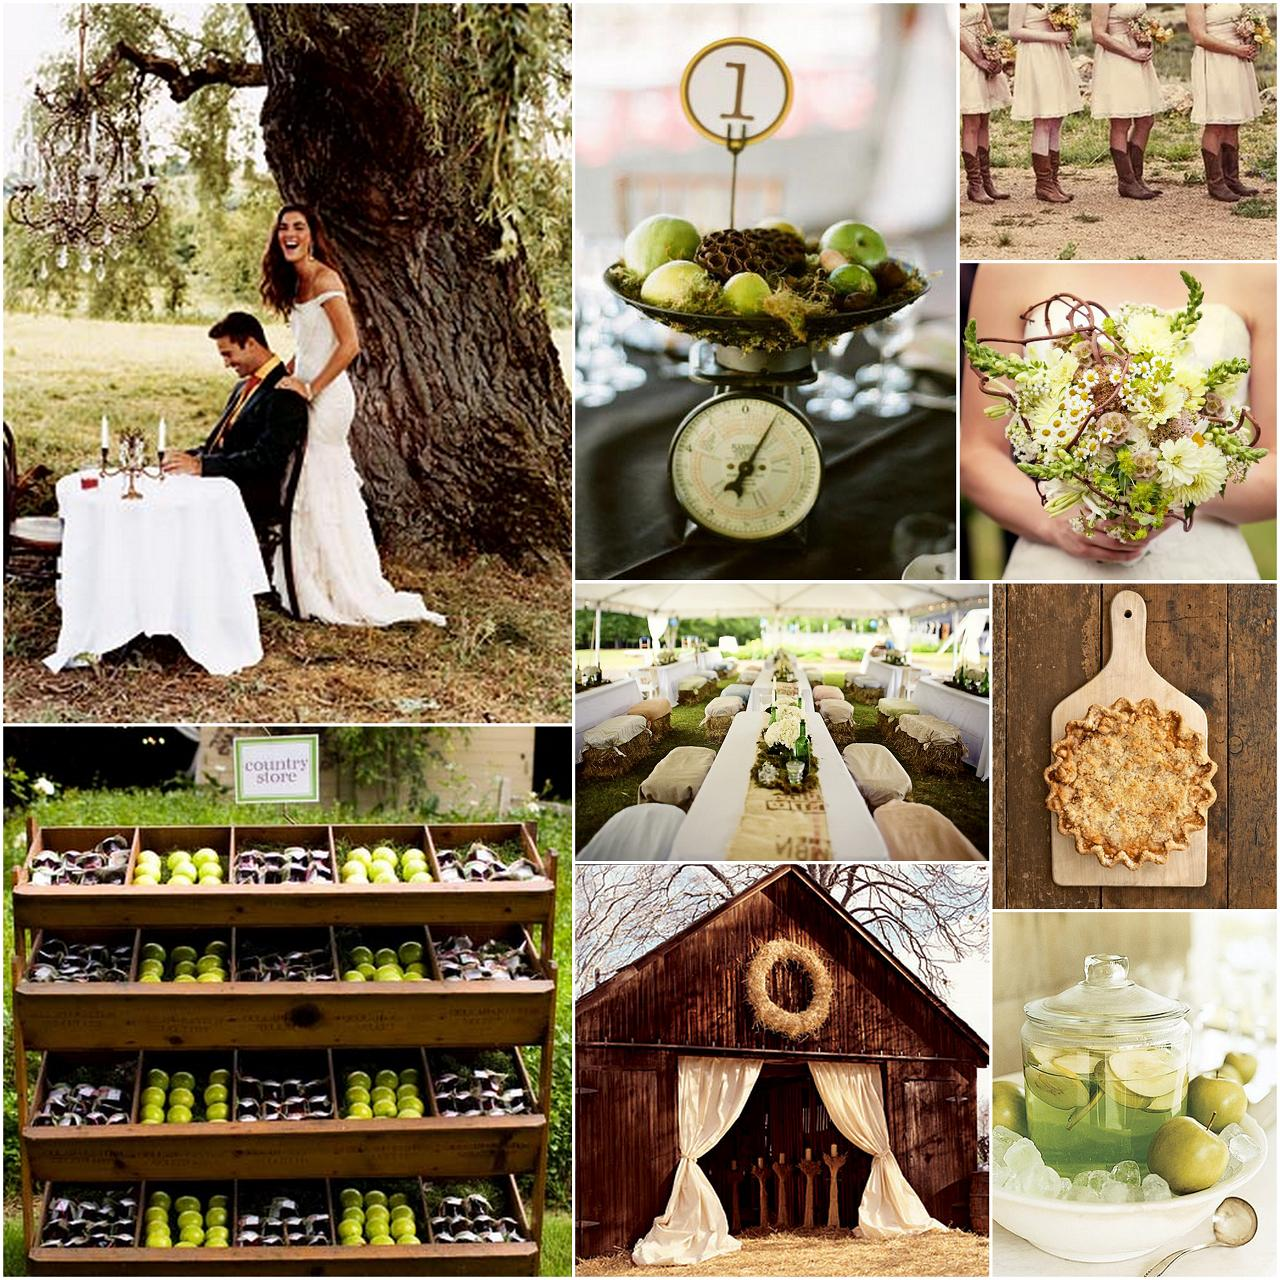 http://2.bp.blogspot.com/_jOvRBIo1b18/TDqC2t0r51I/AAAAAAAADHA/M8NNsQj4VT4/s1600/country+wedding+green+apples+barn+inspiration+board+postcards+and+pretties.jpg